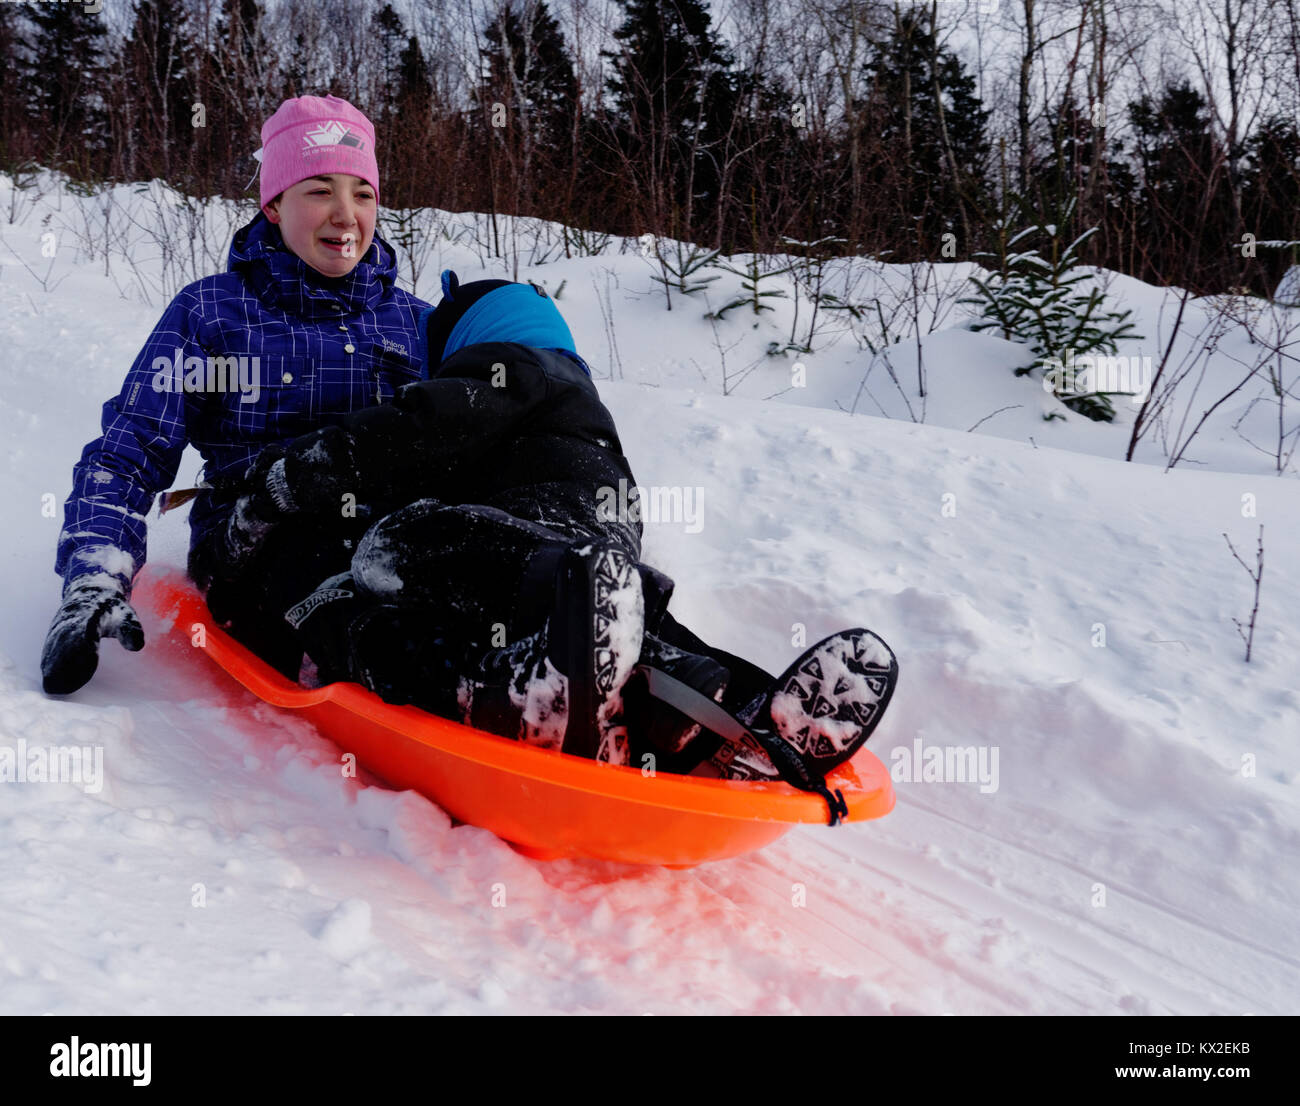 A teenager (18 yr old) in a sledge with a young child (5 yr old), looking nervous as its much faster than she thought - Stock Image